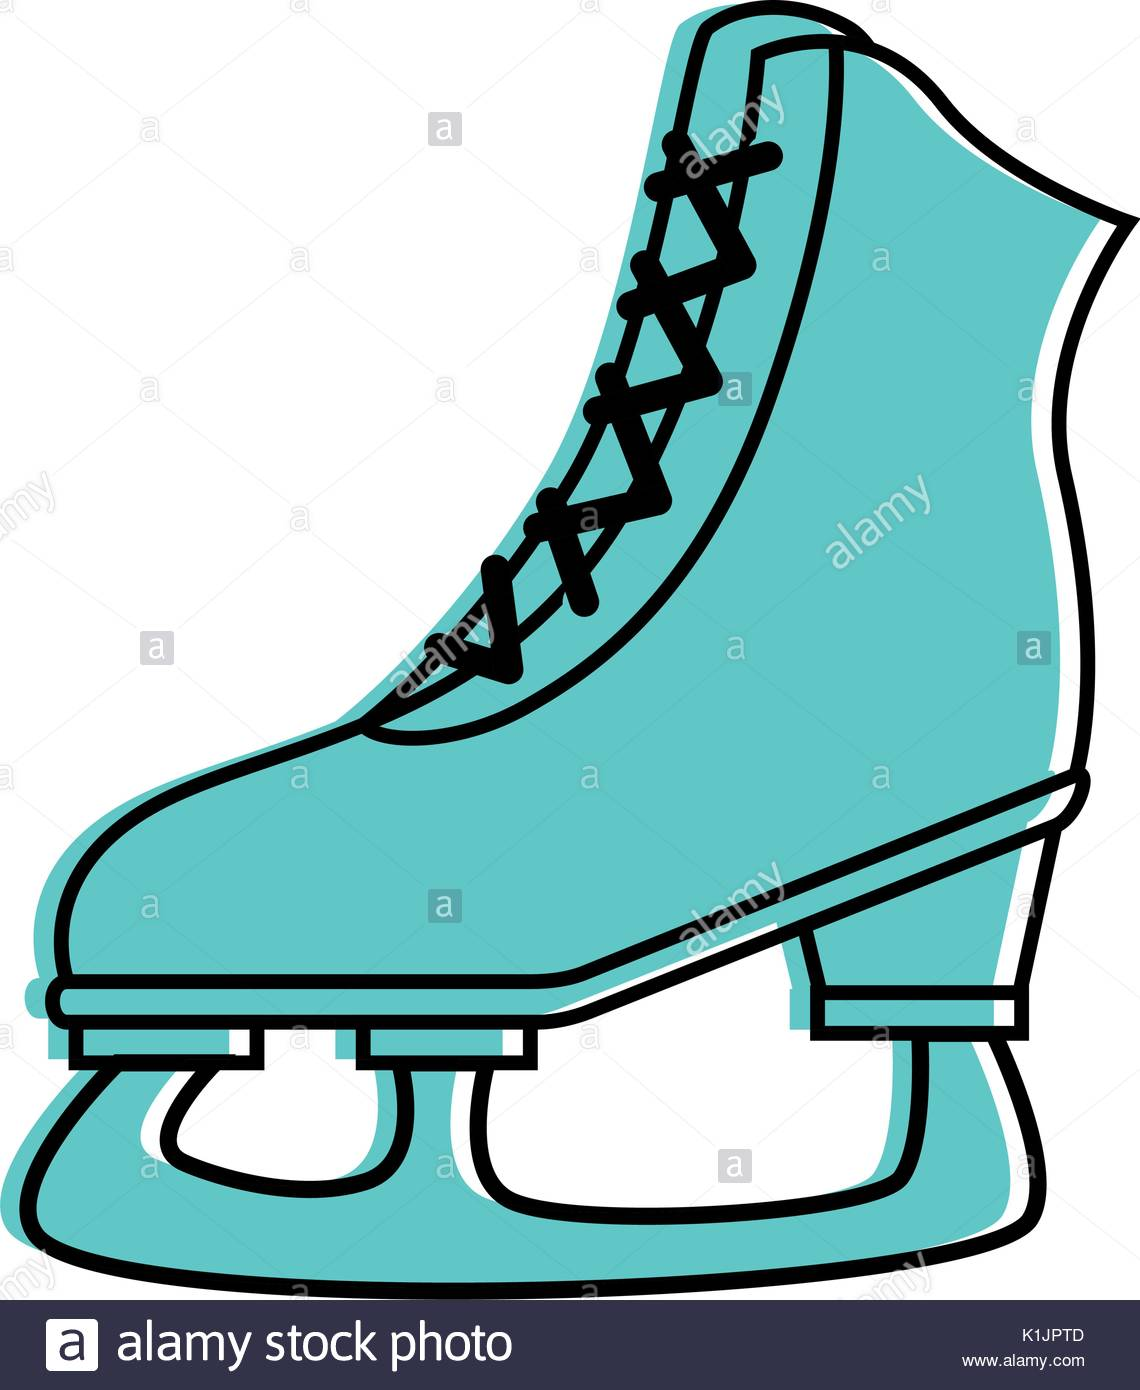 1140x1390 Ice Skates Vectors Stock Photos Amp Ice Skates Vectors Stock Images